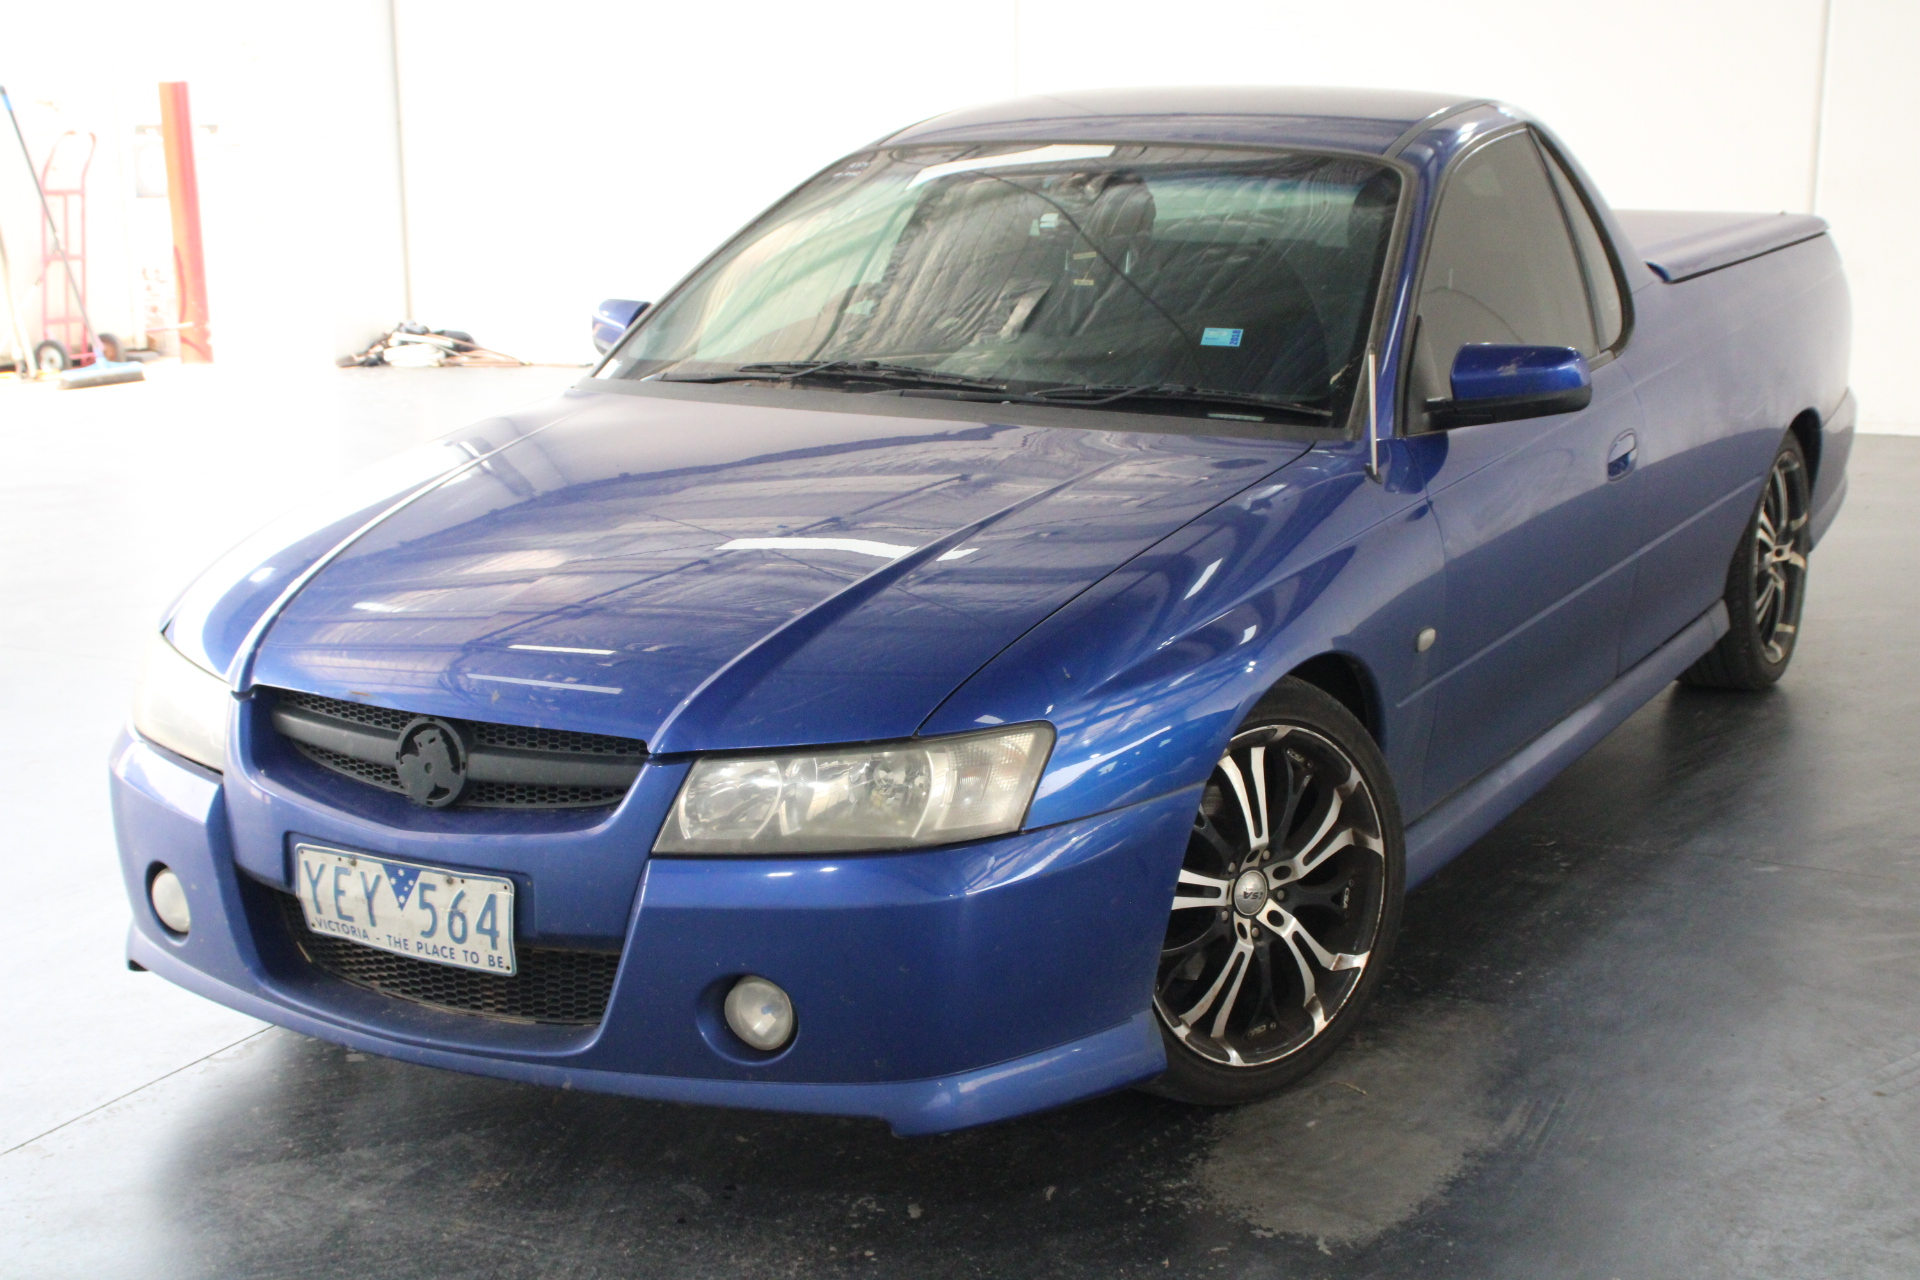 2004 Holden Commodore S VZ Automatic Ute